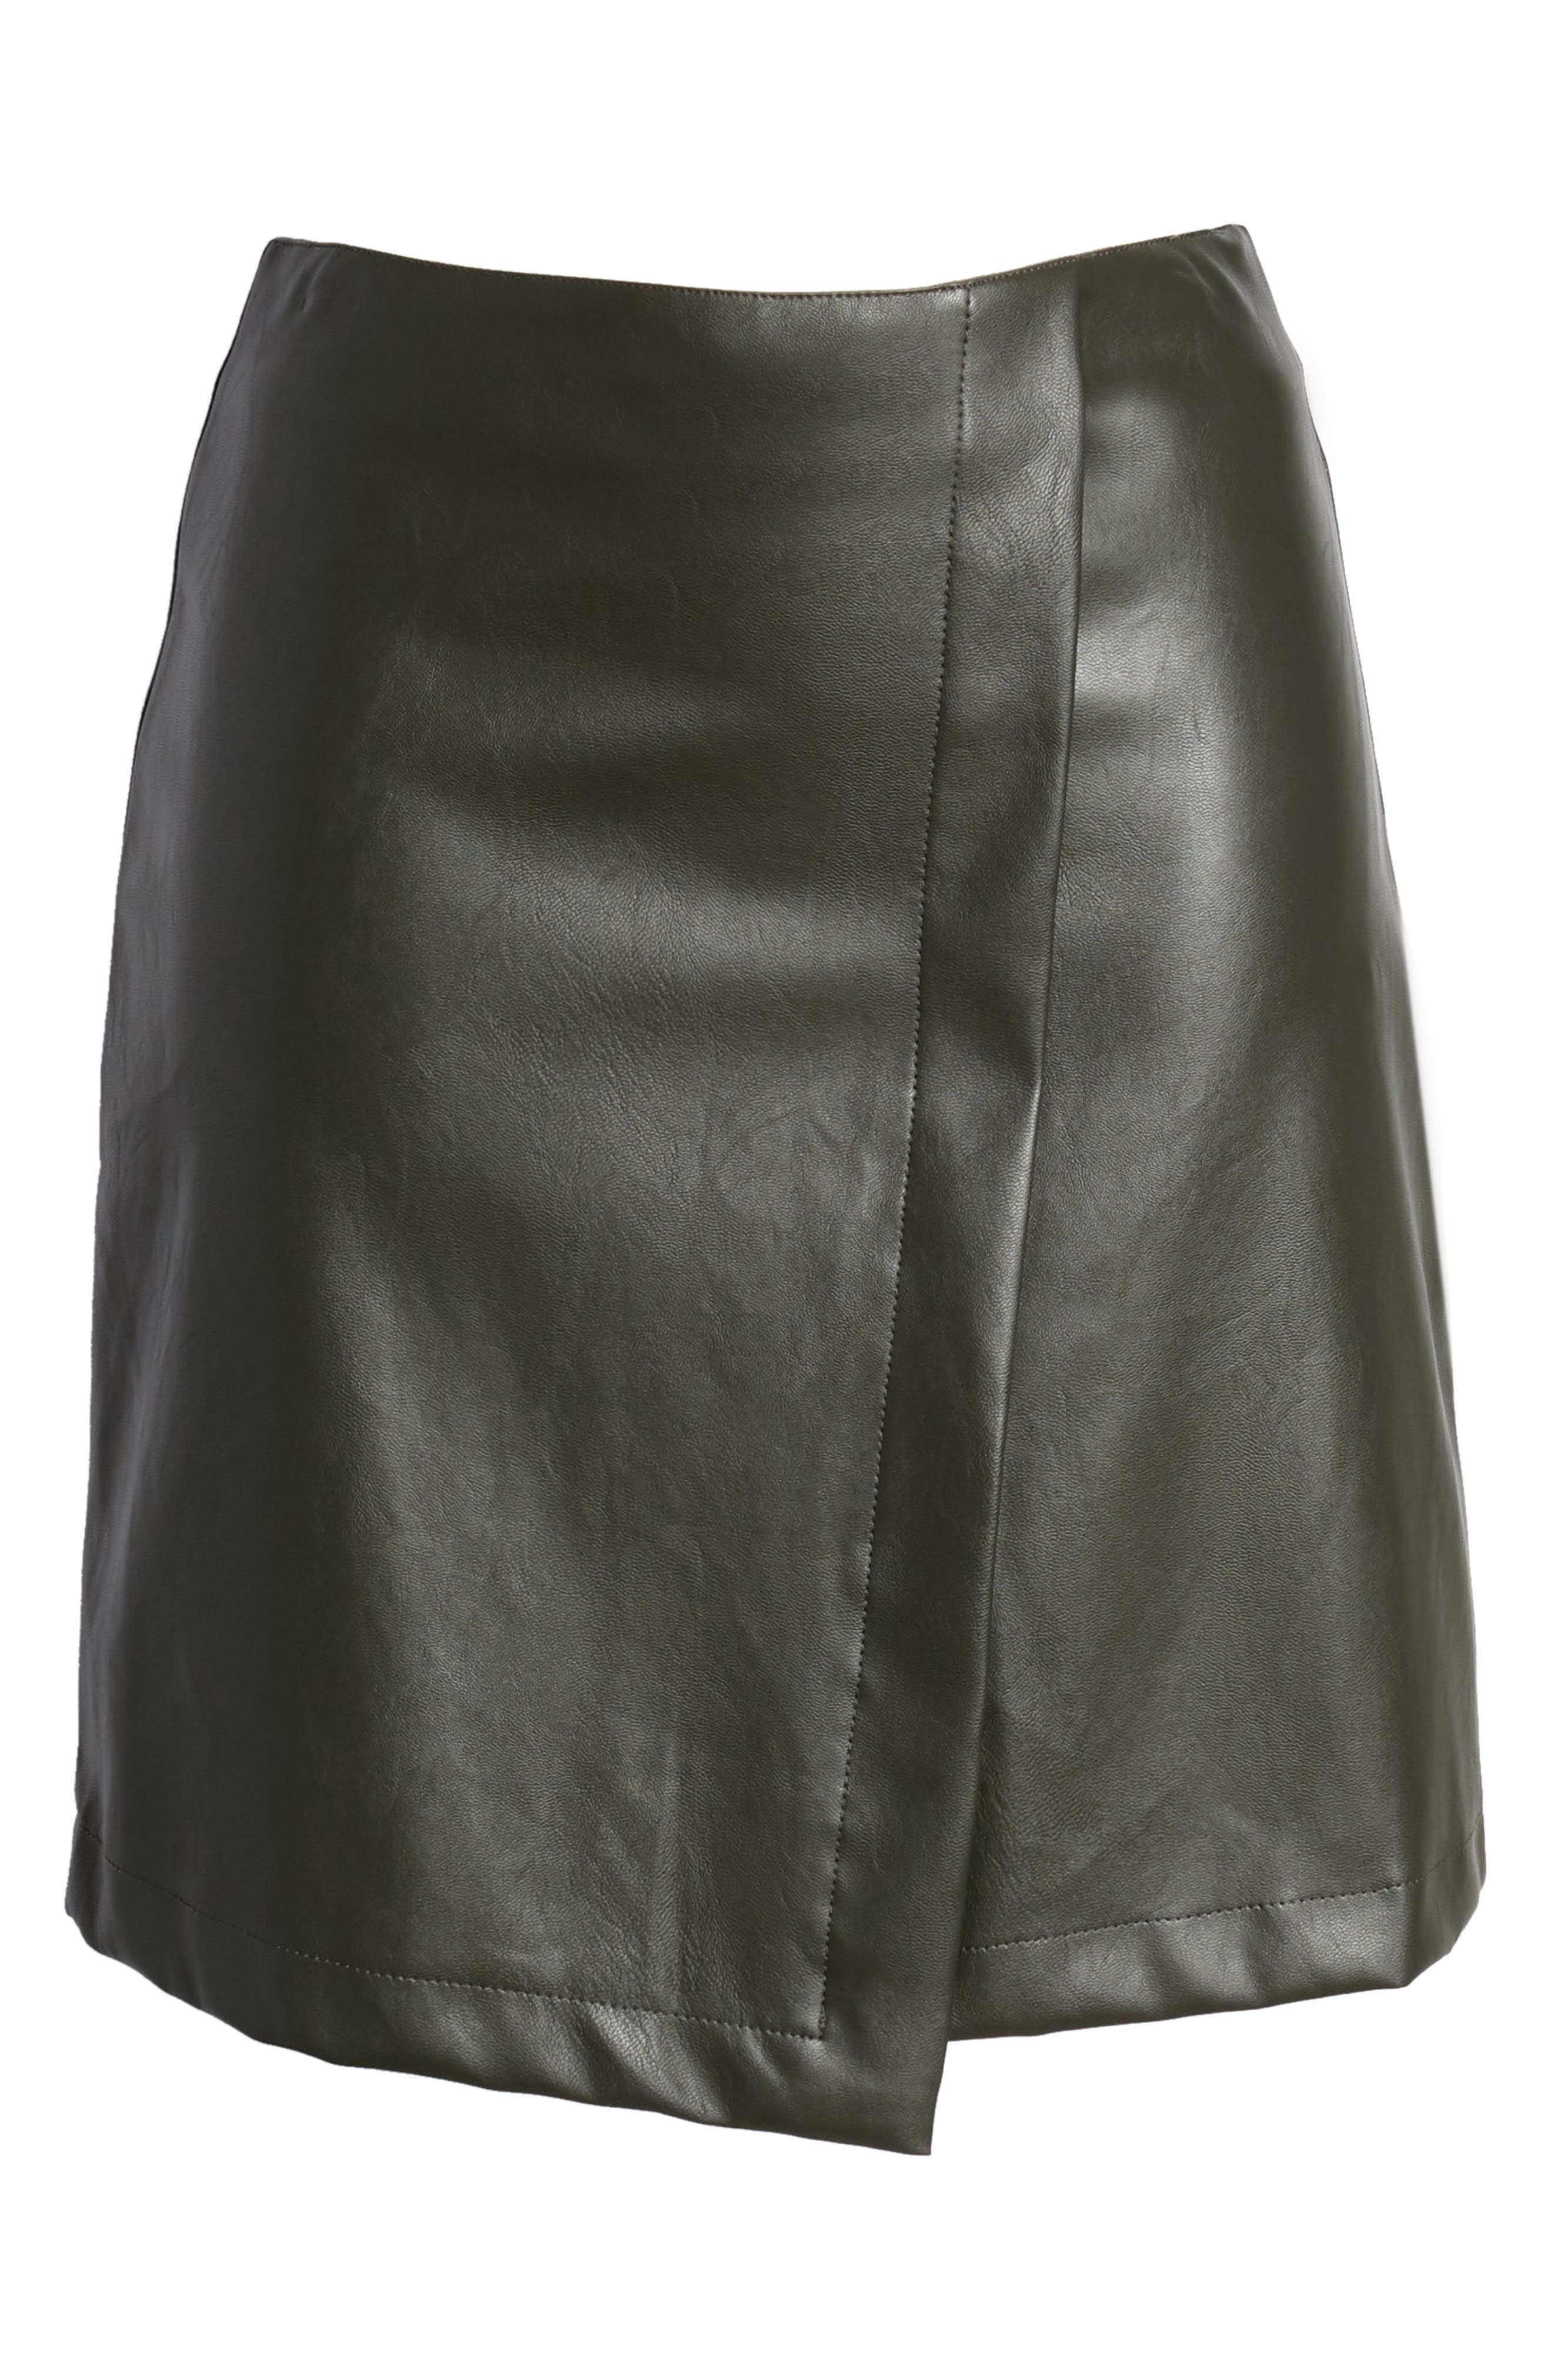 Bishop + Young A-Line Faux Leather Miniskirt,                             Alternate thumbnail 6, color,                             333